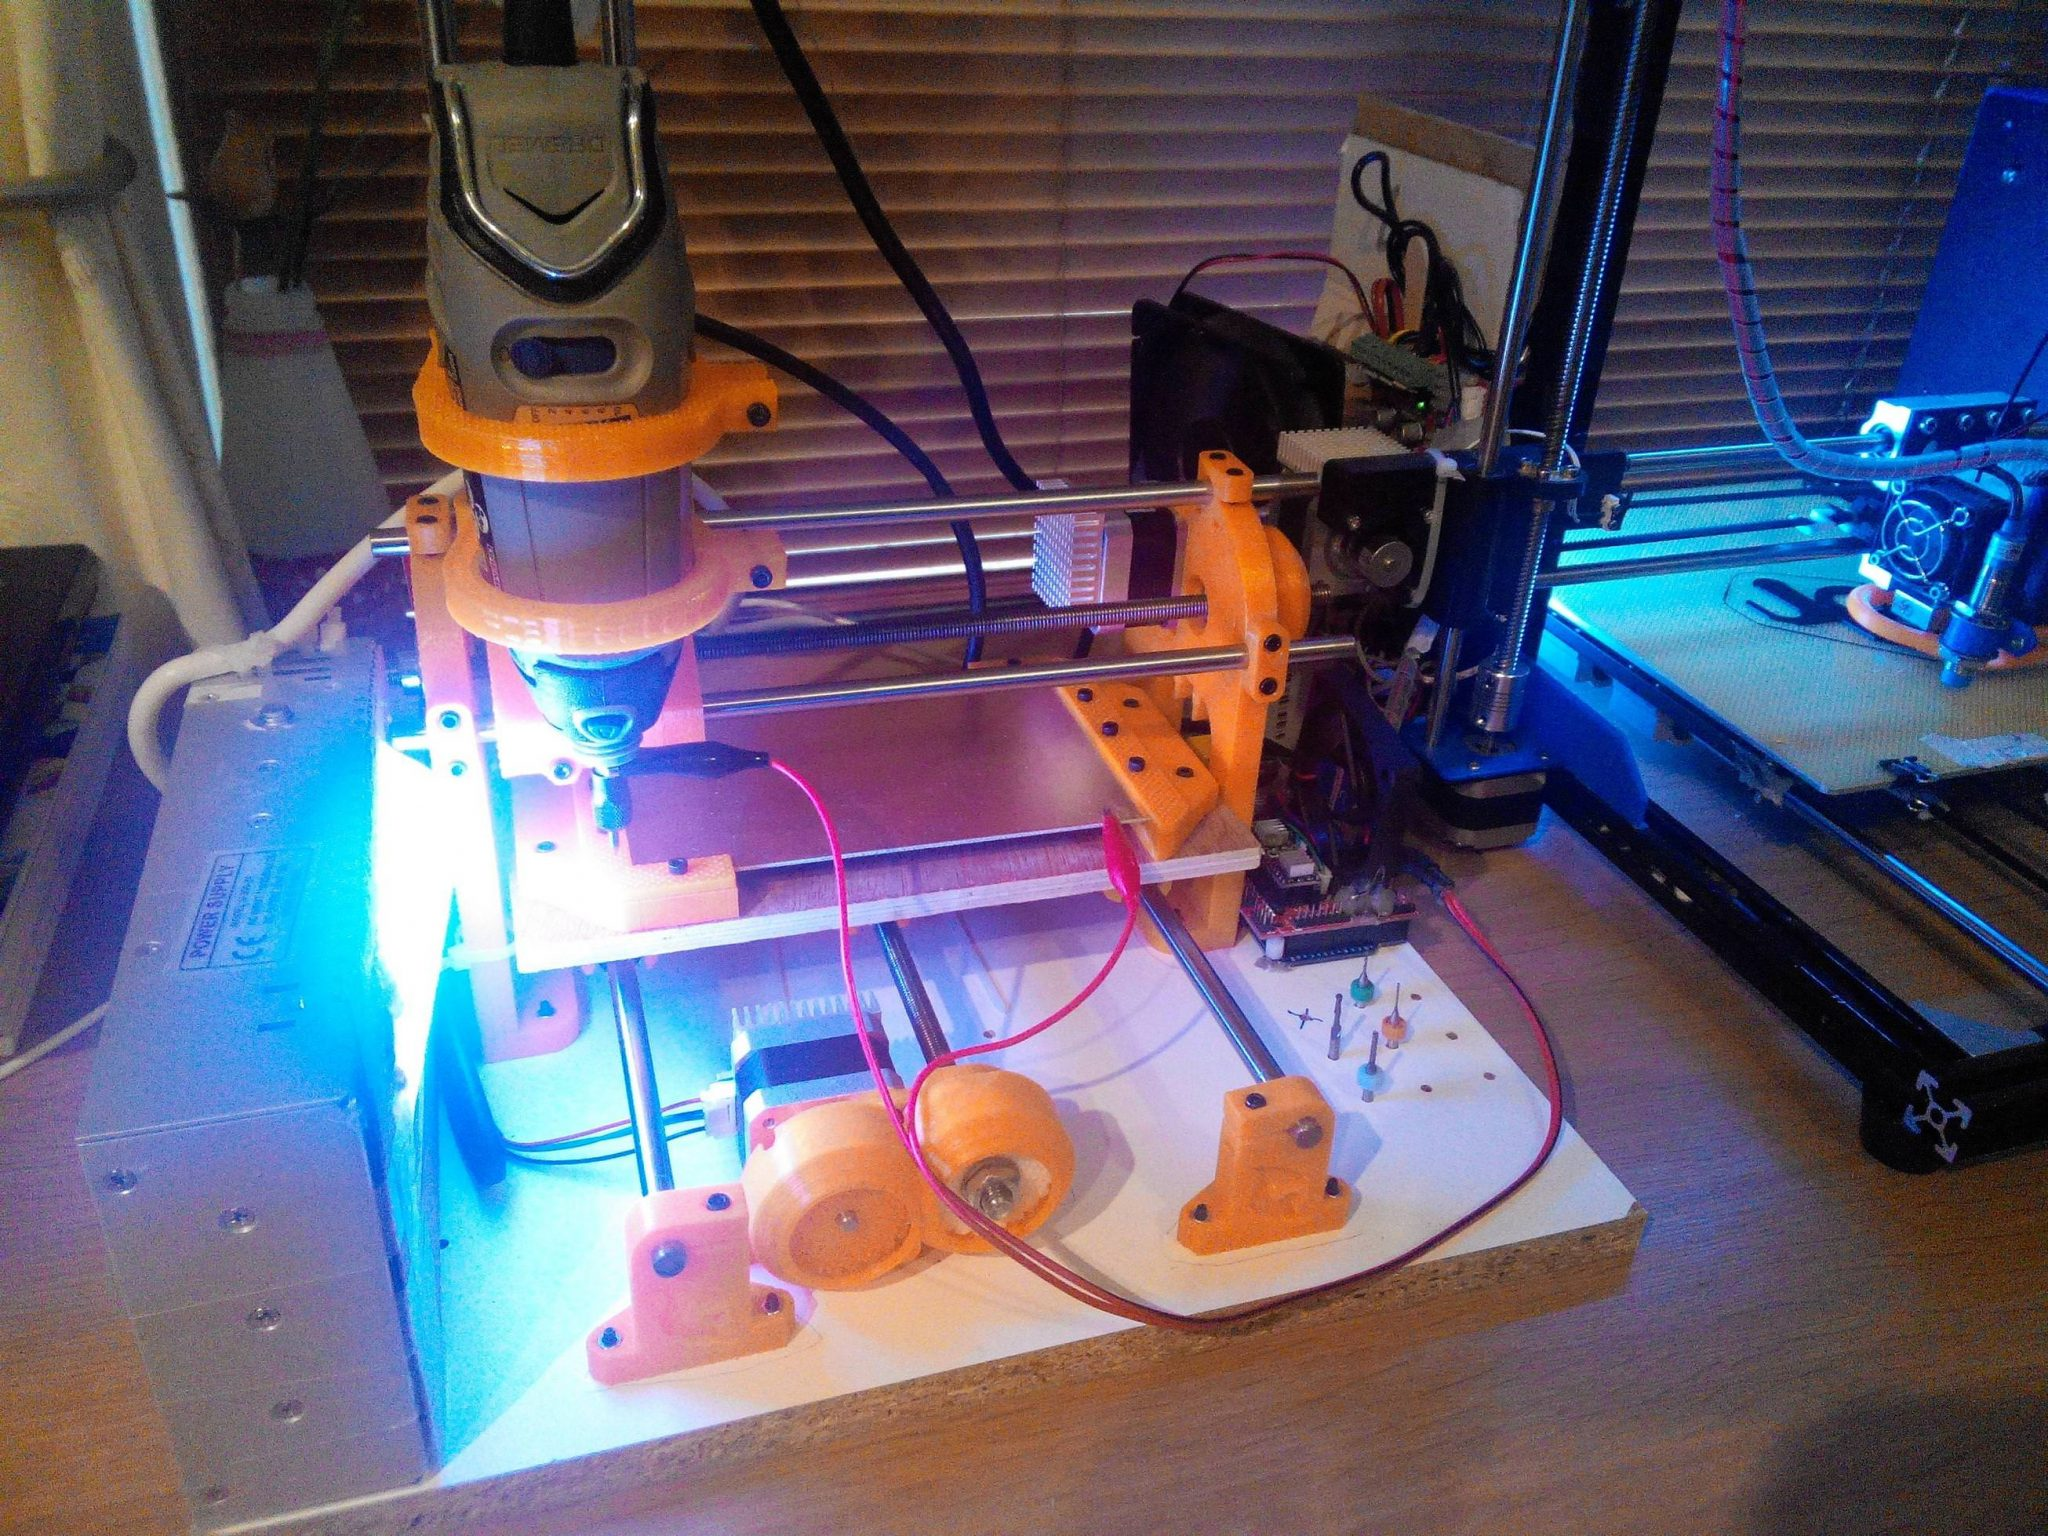 Marioarm's 3D printed CNC machine. Photo via Imgur